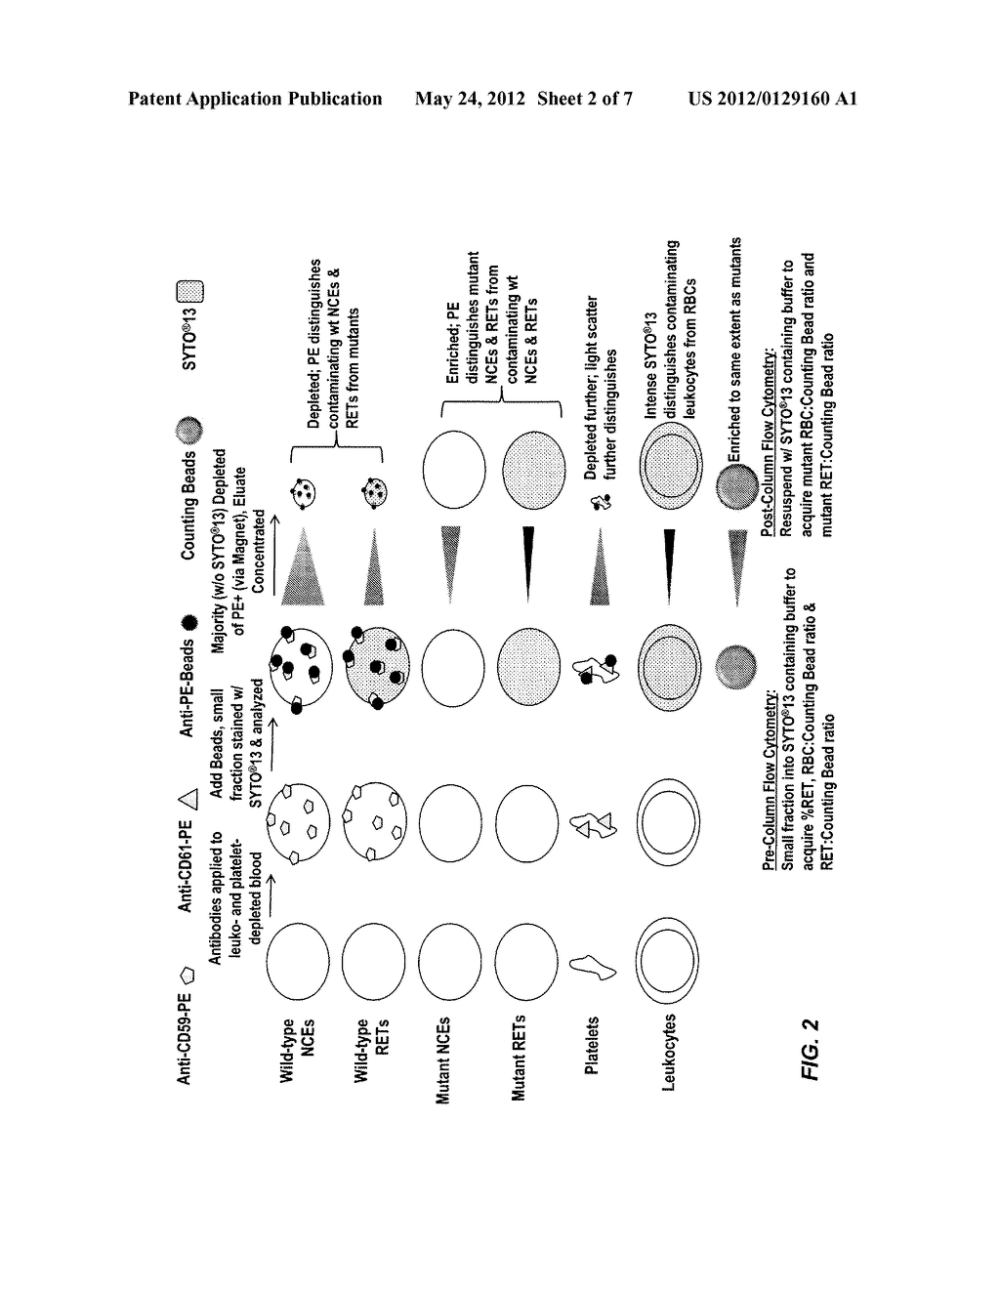 medium resolution of rapid in vivo gene mutation assay based on the pig a gene diagram schematic and image 03